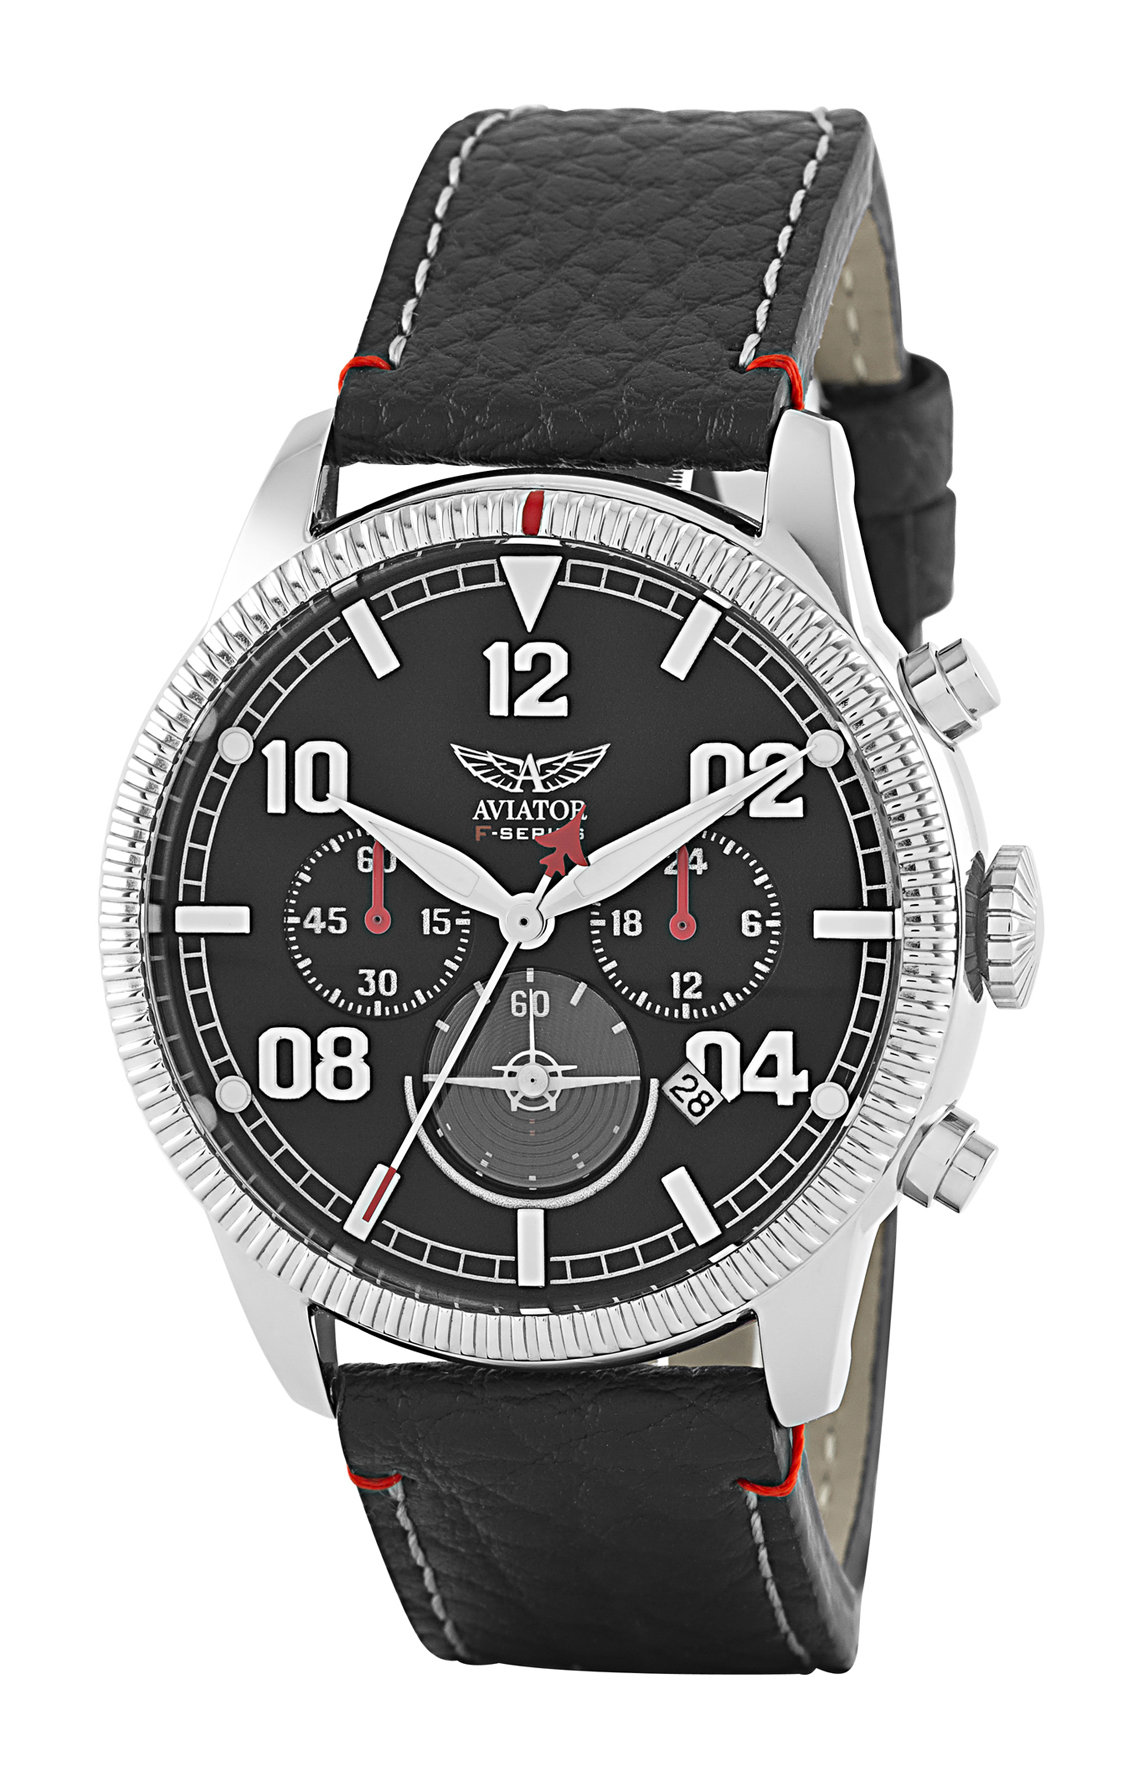 aviator-watch-singapore-range_scorpio-worldwide_travel-retail-distributor